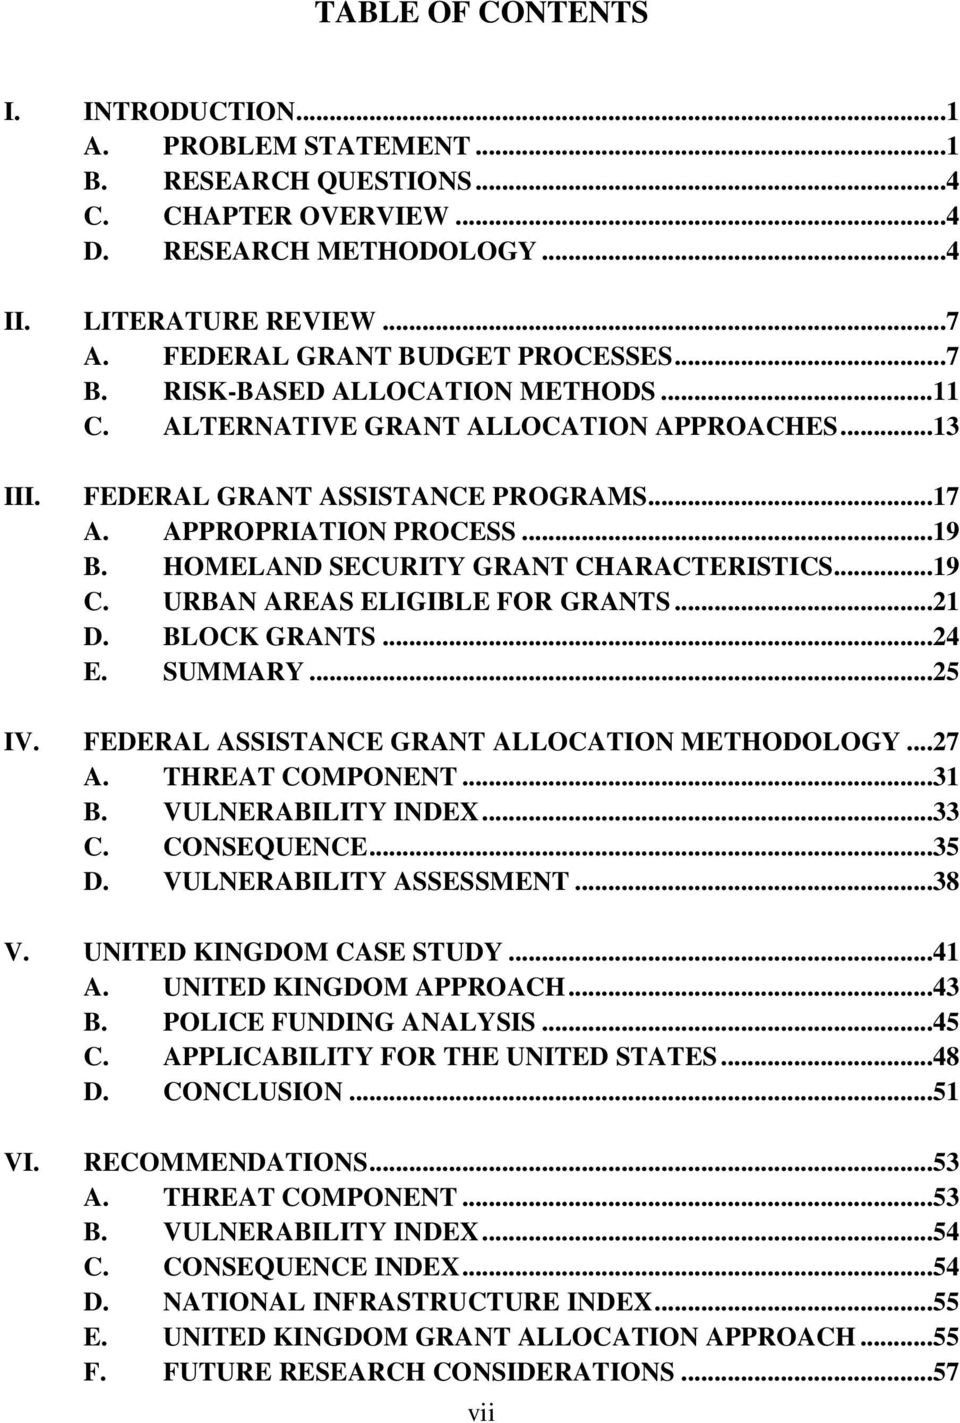 HOMELAND SECURITY GRANT CHARACTERISTICS...19 C. URBAN AREAS ELIGIBLE FOR GRANTS...21 D. BLOCK GRANTS...24 E. SUMMARY...25 IV. FEDERAL ASSISTANCE GRANT ALLOCATION METHODOLOGY...27 A. THREAT COMPONENT.